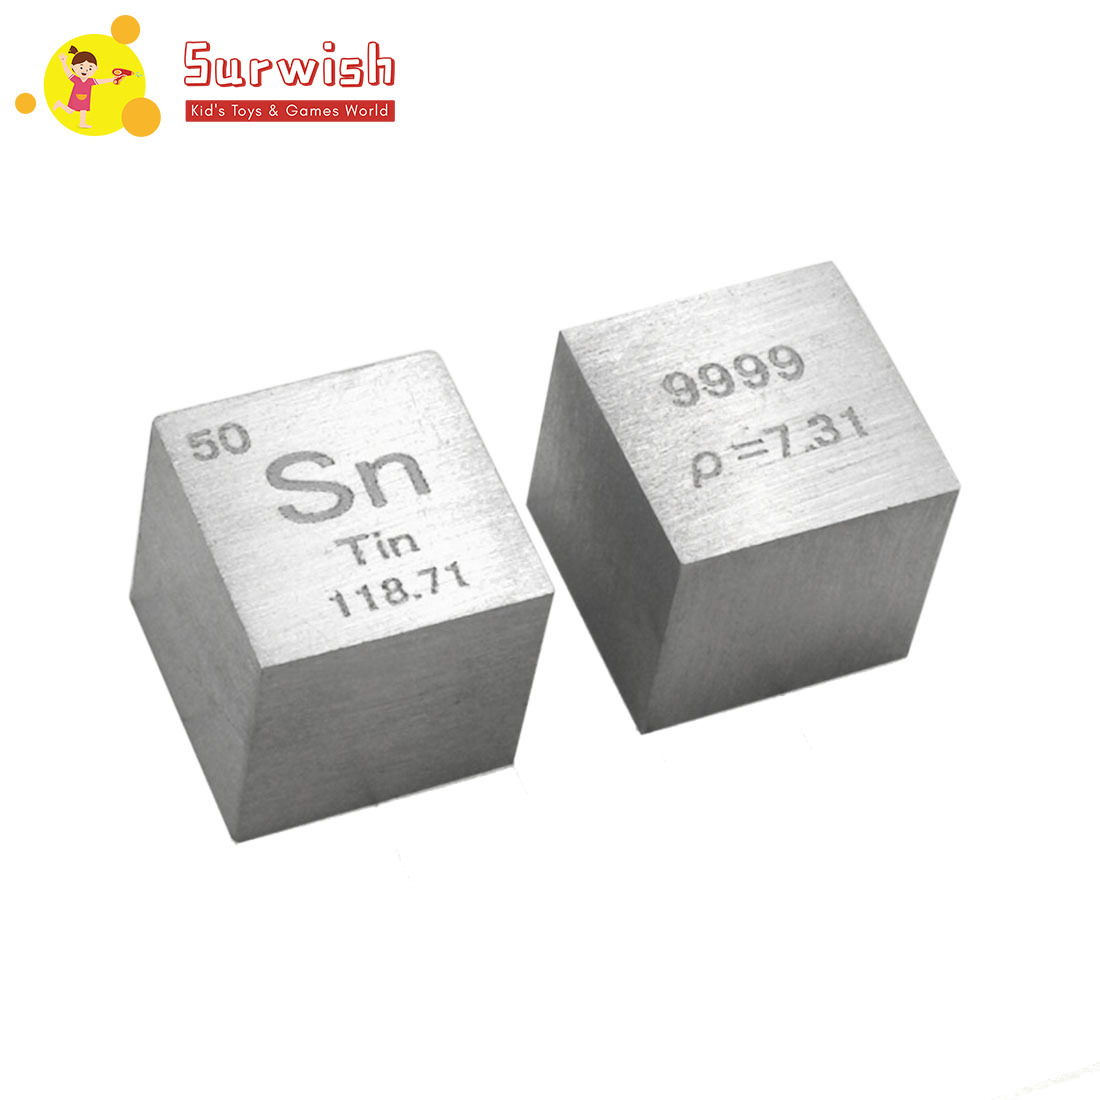 1 Pcs DIY Science Cubes Toy For Children Learning Remote 10 X 10 X 10mm Wiredrawing Stannum Cube Periodic Table Of Elements Cube